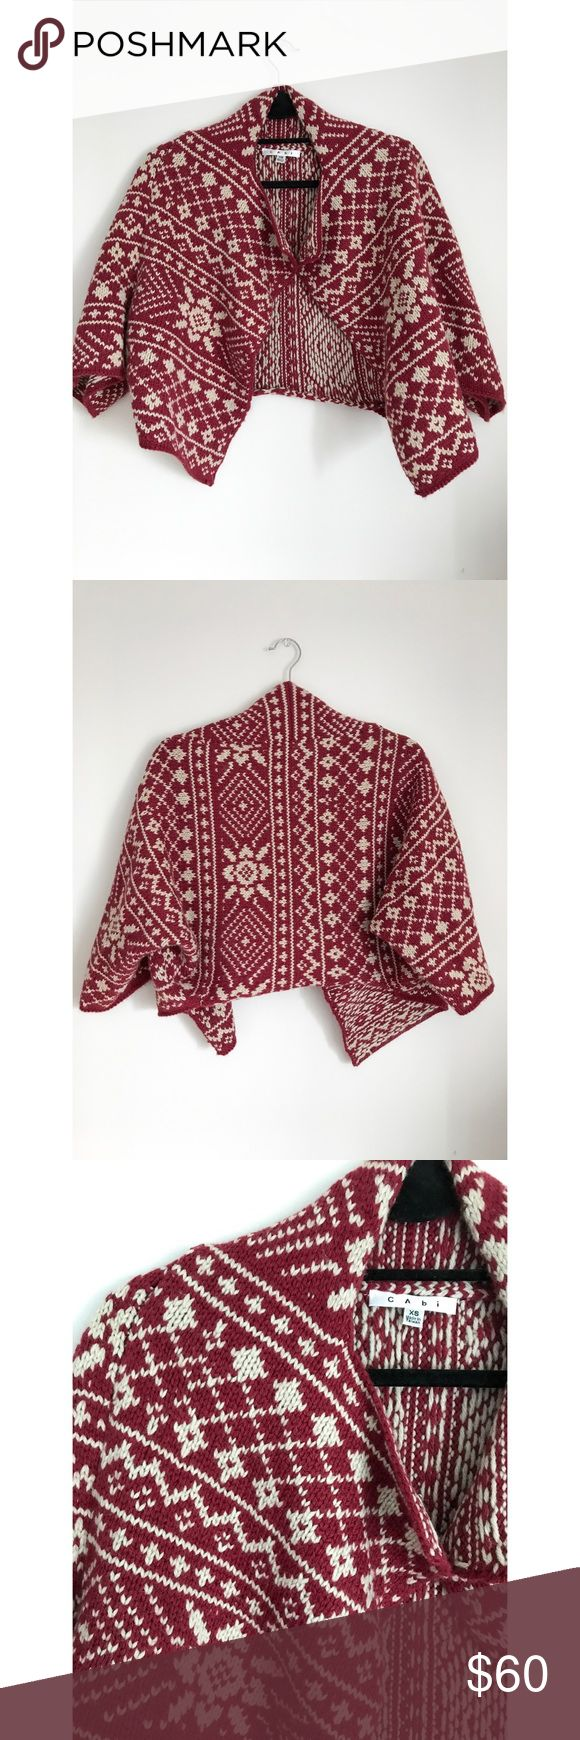 CAbi Slouch Red & White Comfortable Cowl/ Cardi New without tags. Can fit multiple sizes. Very comfortable. Soft. Warm. Good to wear as just a throw over. Tags located at top back and inside right. Made in Taiwan.   70% Acrylic 30% Wool  Hand wash cold  Lay flat to dry Steam iron   L: 17 in  W: 17 in S: 17 in  Please read shop policies before purchasing.  All clothing shipped pre-ironed/ washed/ lint-rolled. All items comes from a smoke-free & pet-free home.  Will lower price upon agreeing…